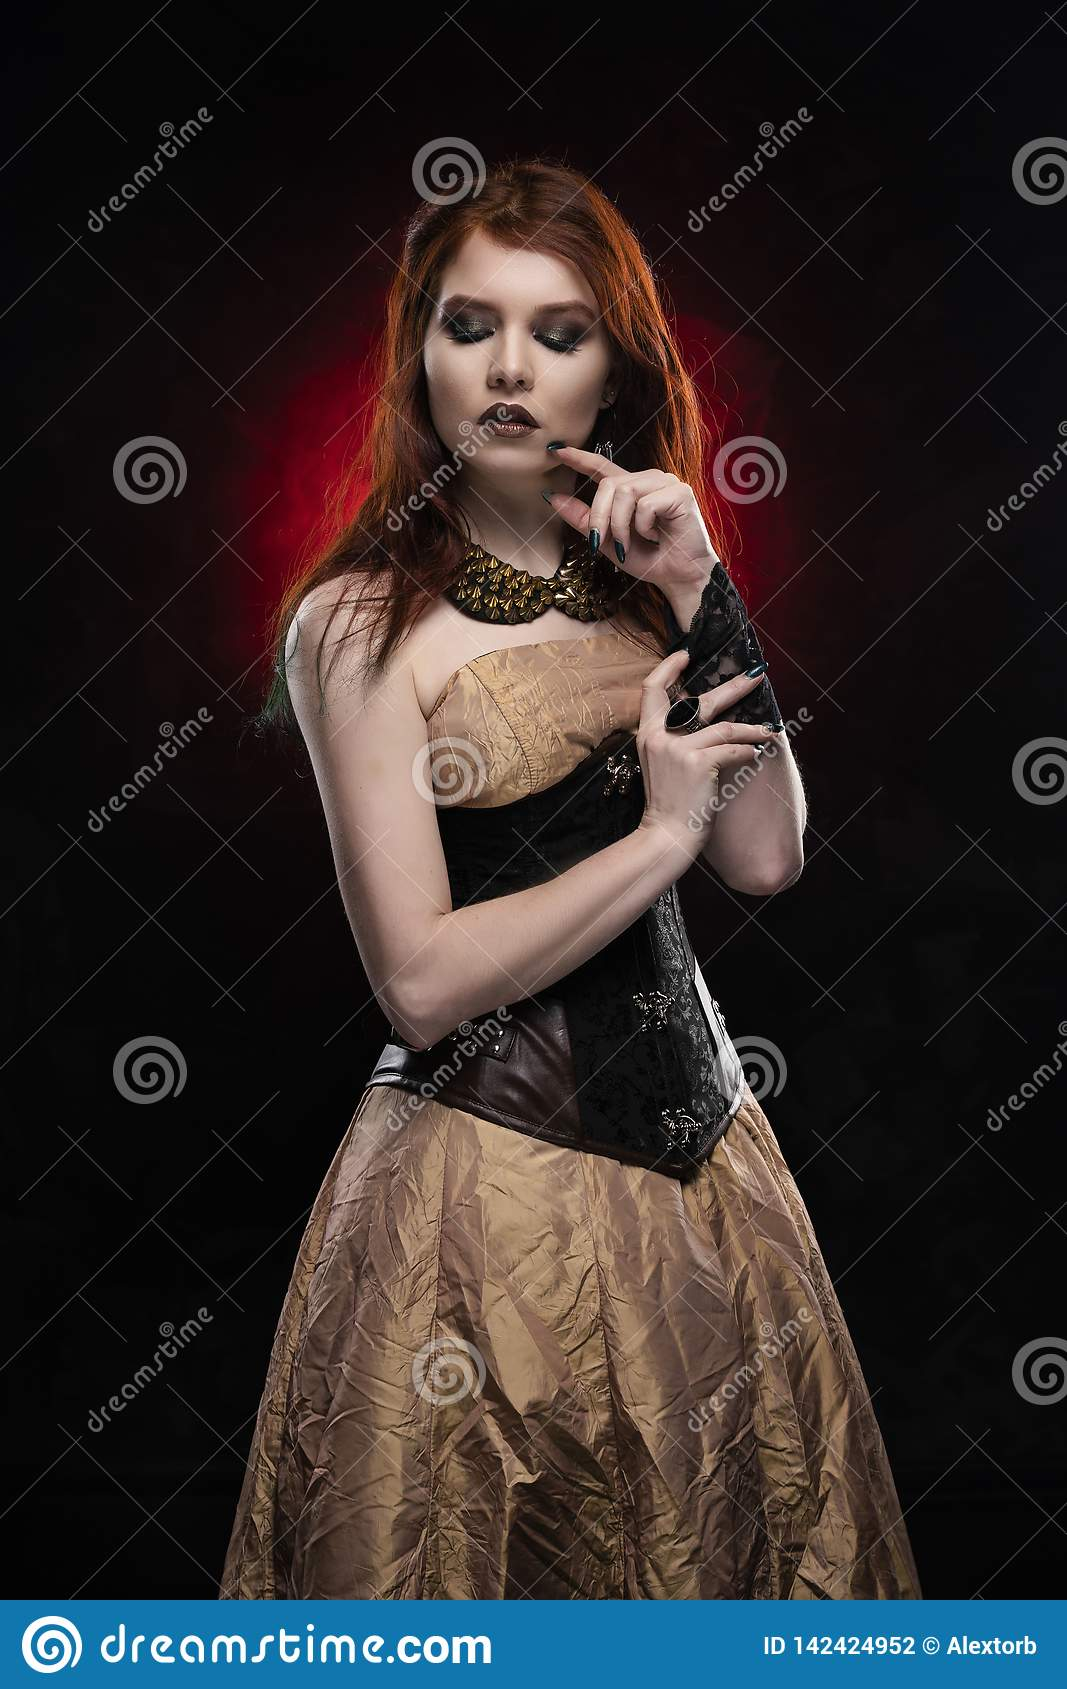 A beautiful thoughtful redhead cosplay girl wearing a Victorian-style steampunk dress and corset. Portrait. Black and red